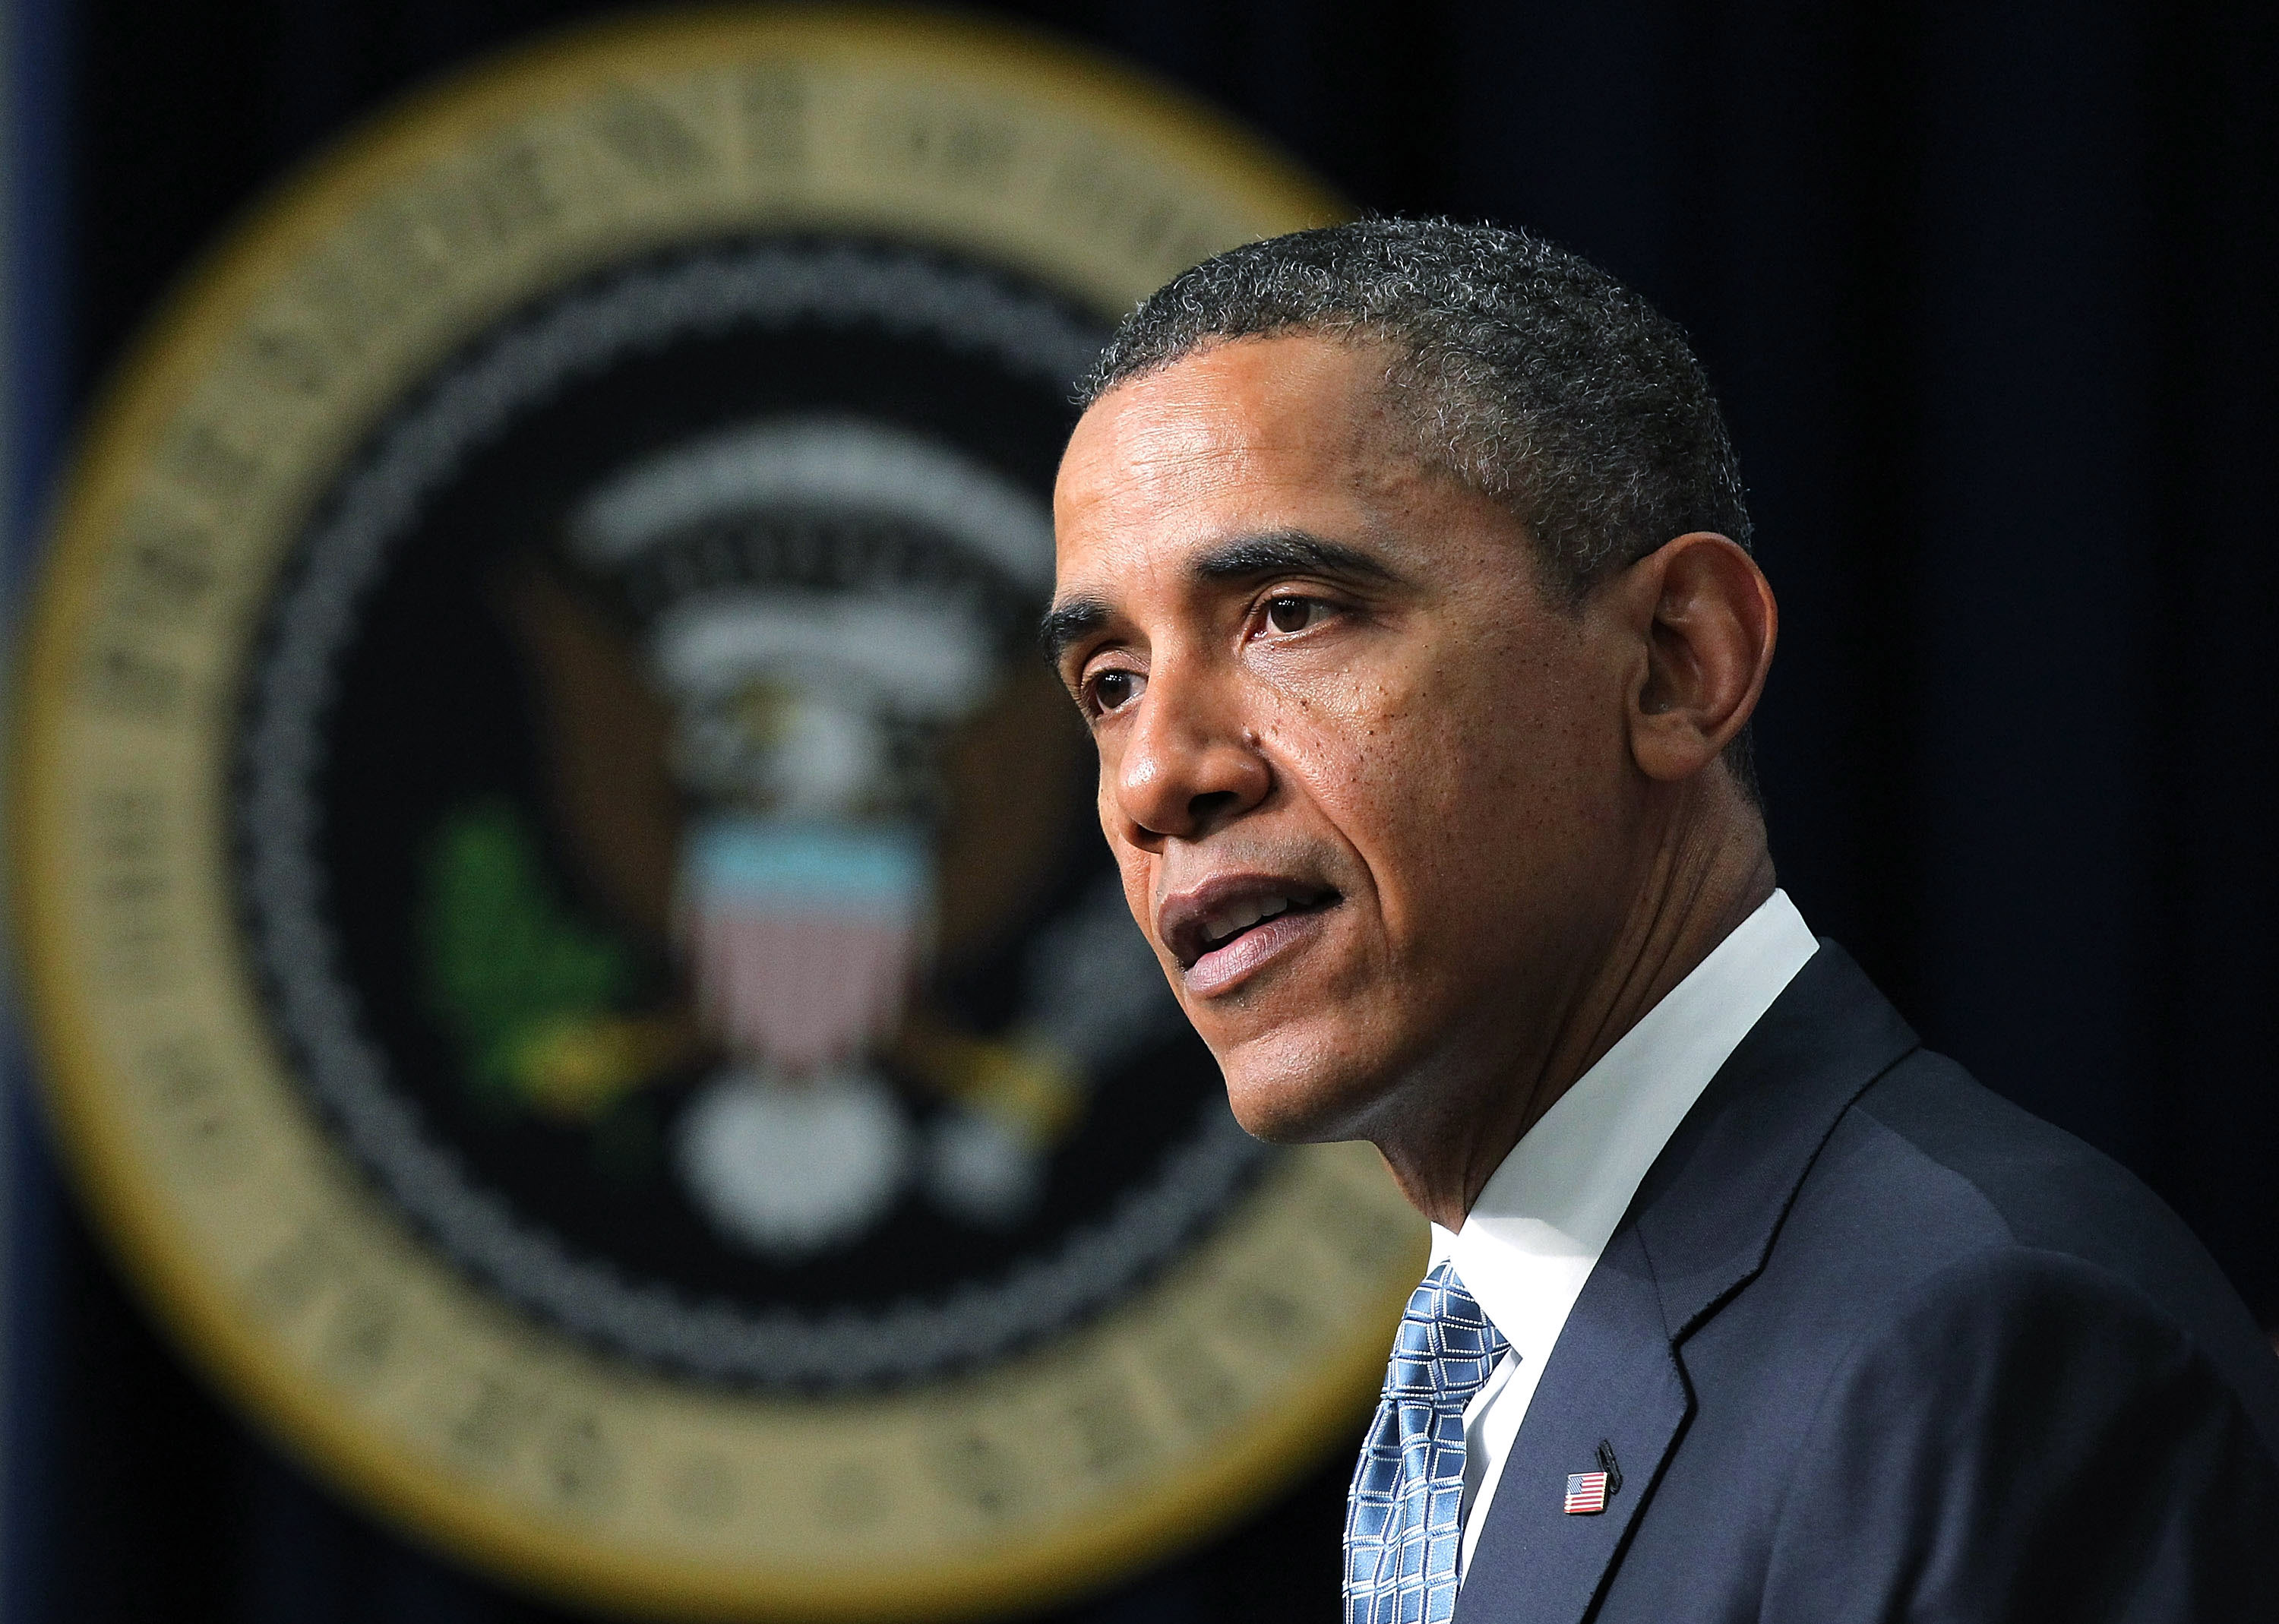 U.S. President Barack Obama talks about tax cuts in Washington, D.C.